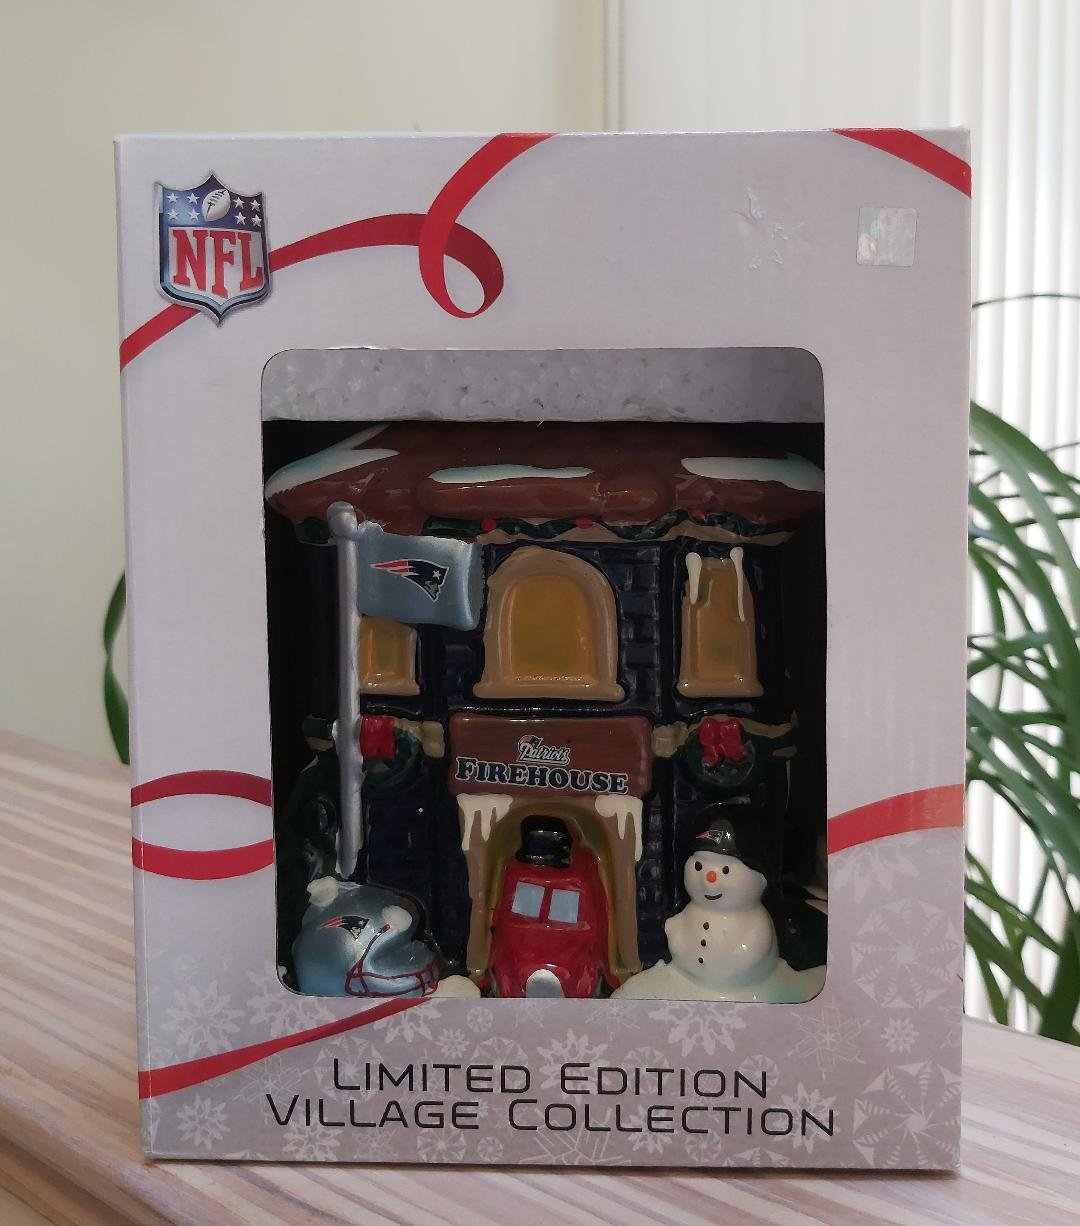 Forever Collectibles Christmas Village New England Patriots NFL Football Firehouse Ceramic Building!